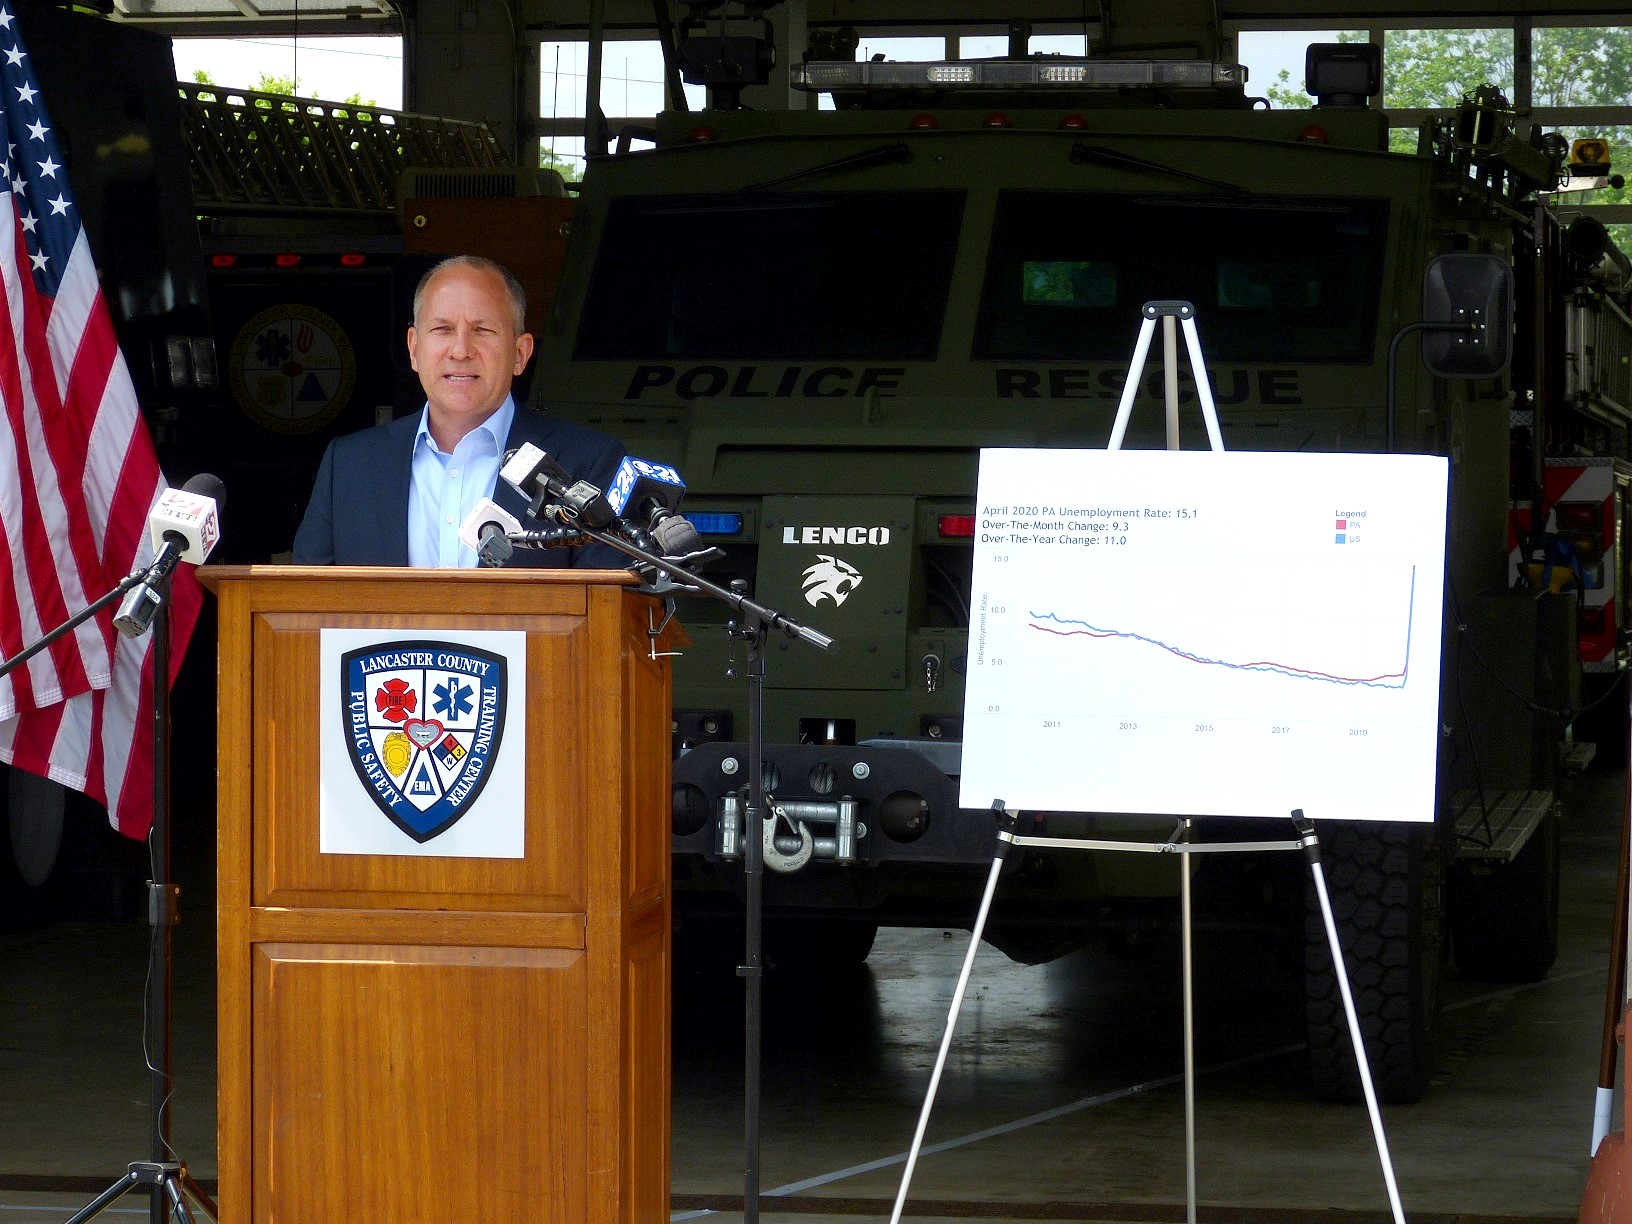 U.S. Rep. Lloyd Smucker speaks at a news briefing at the Lancaster County Public Safety Training Center on Friday, May 29, 2020. At his right is a chart showing Pennsylvania and U.S. unemployment rates.  (Photo: Tim Stuhldreher)